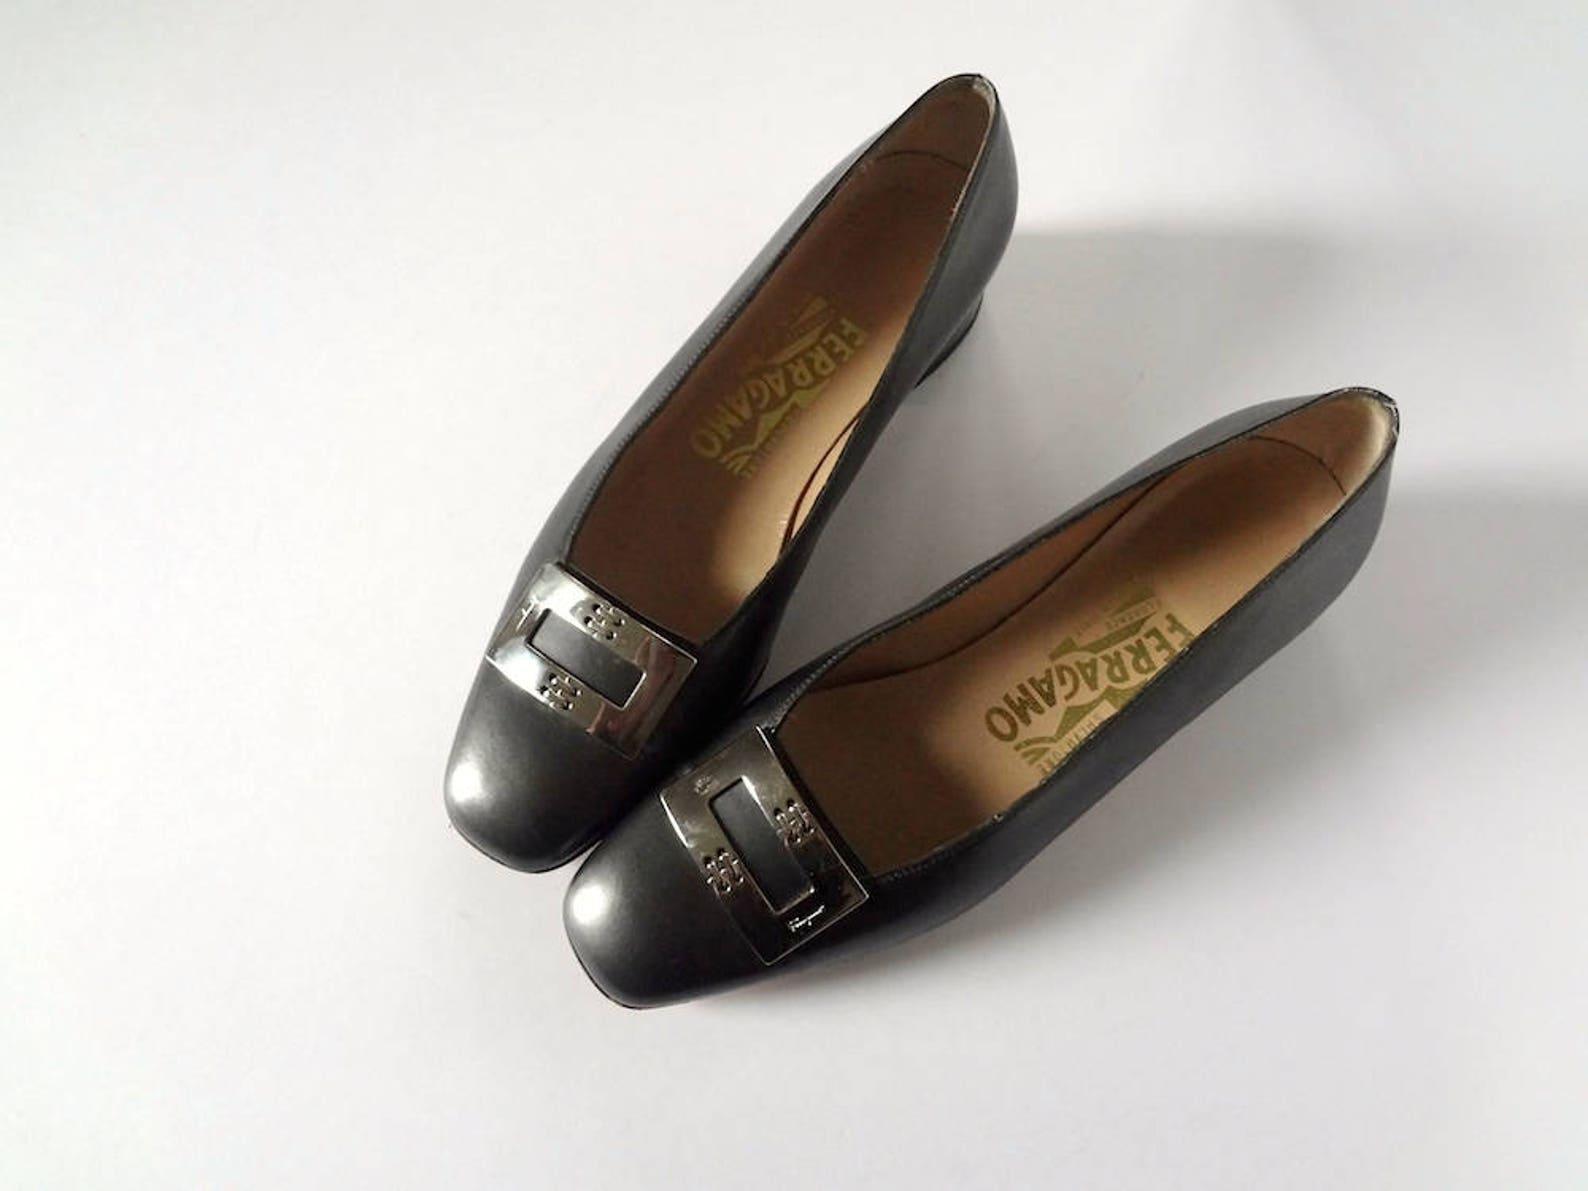 vintage ferragamo ballet flats leather low heel shoes with metal buckle - size 36b